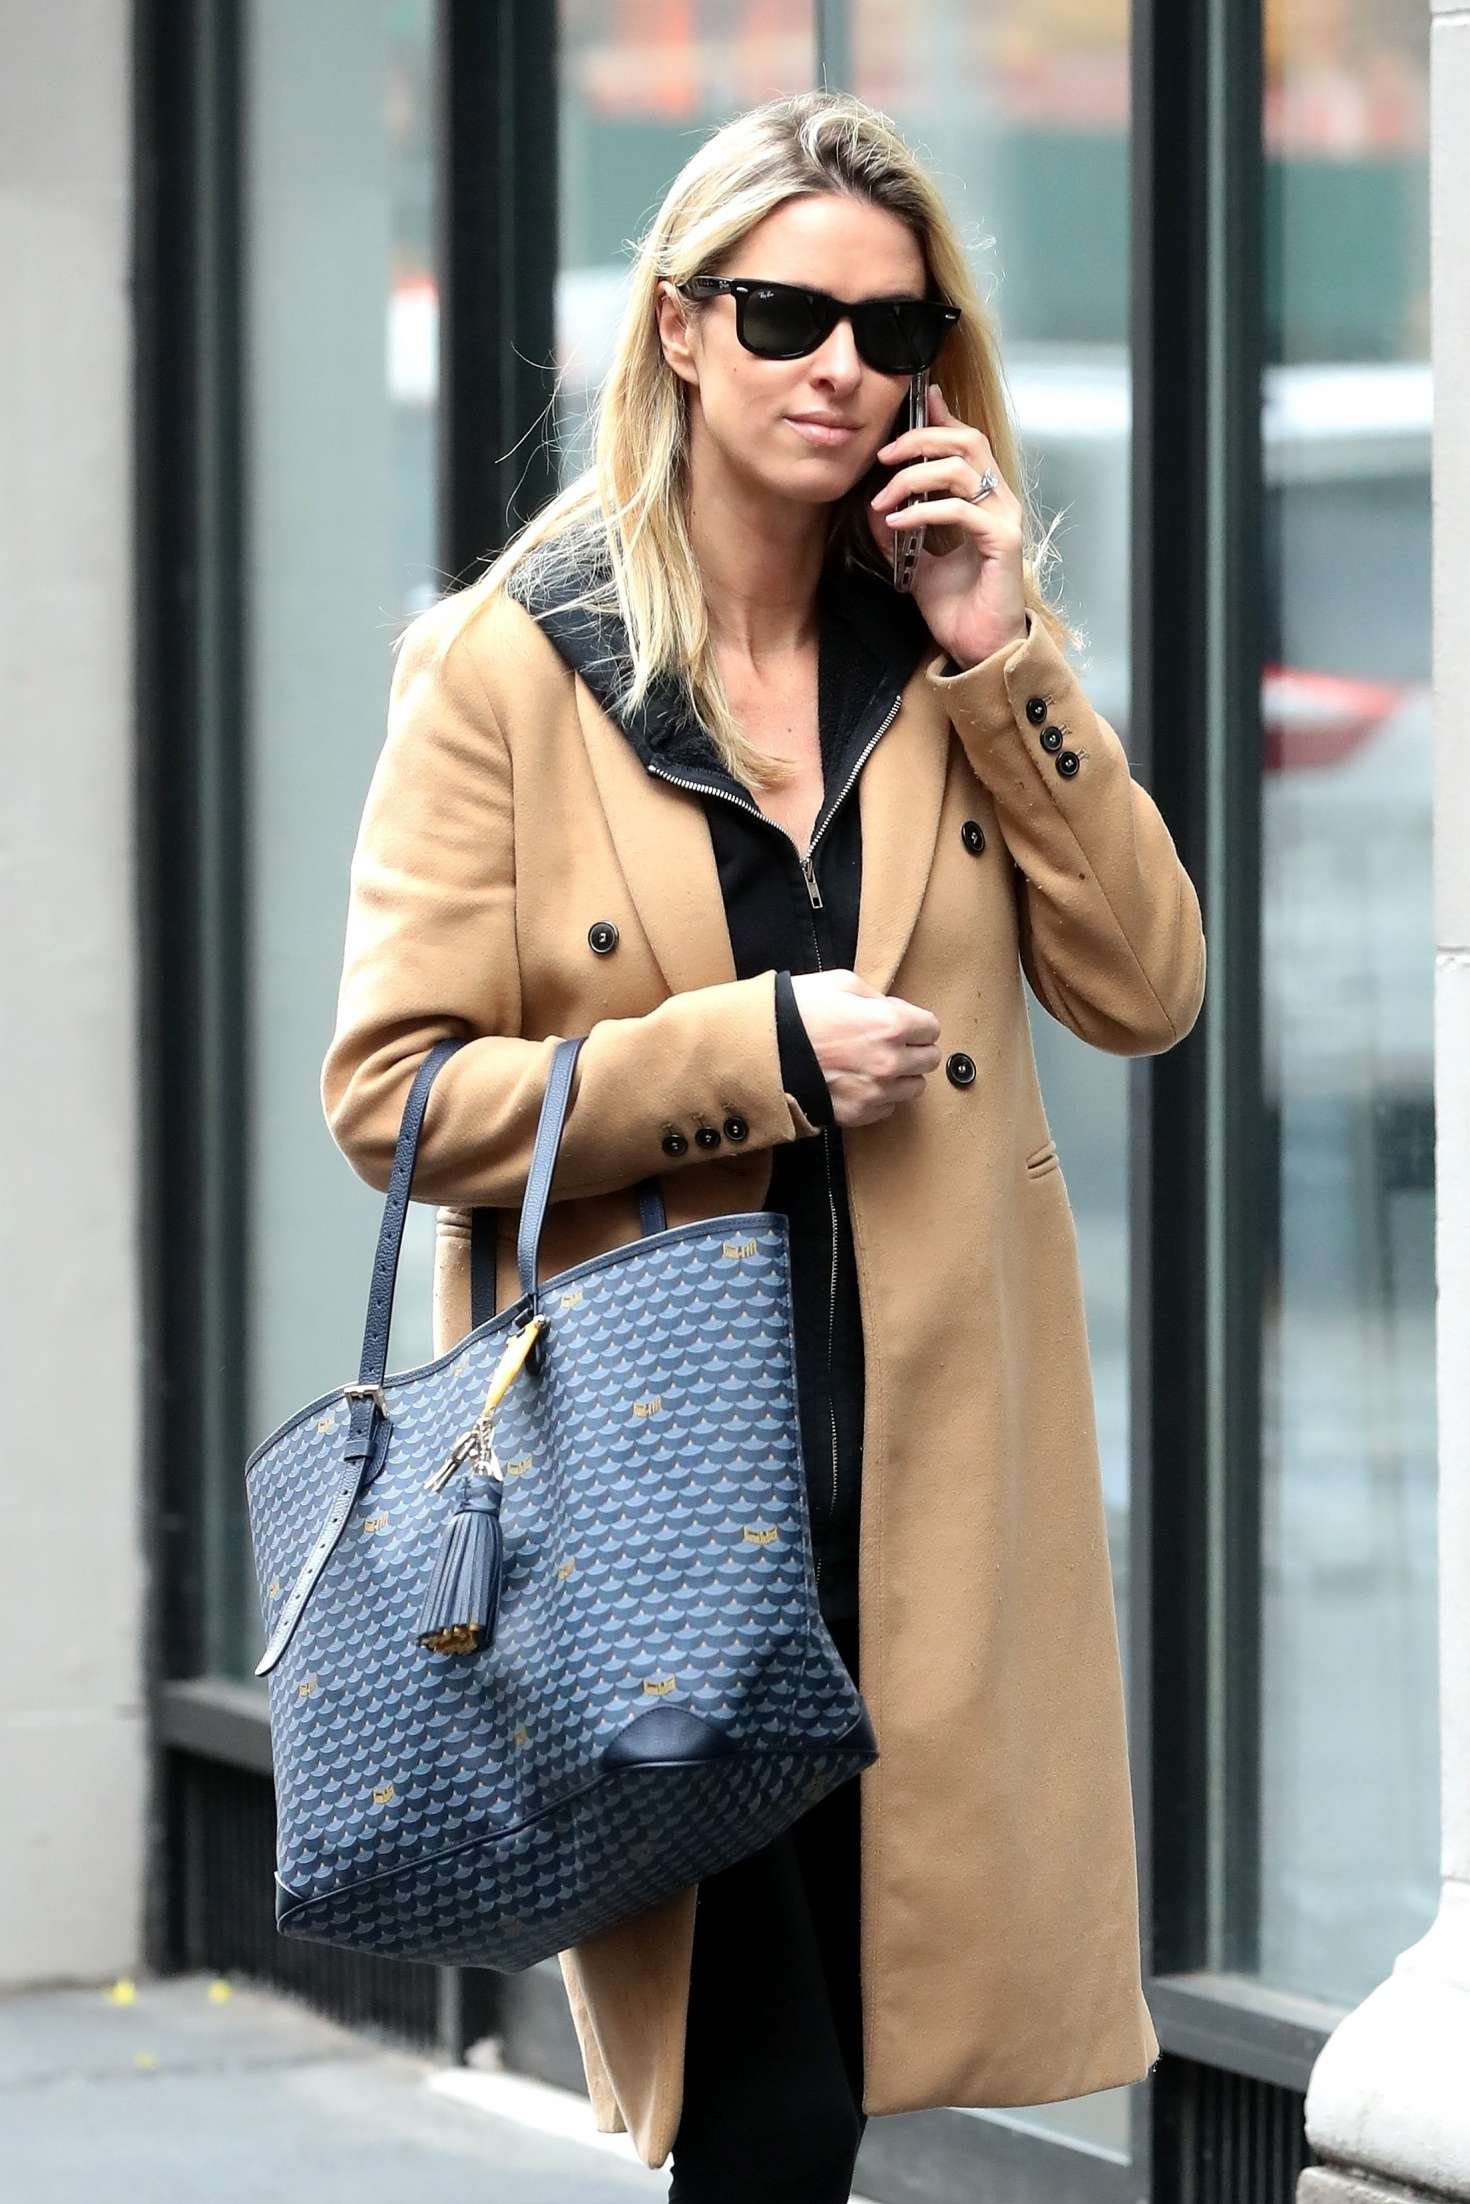 Nicky Hilton - Chats on her phone in New York City